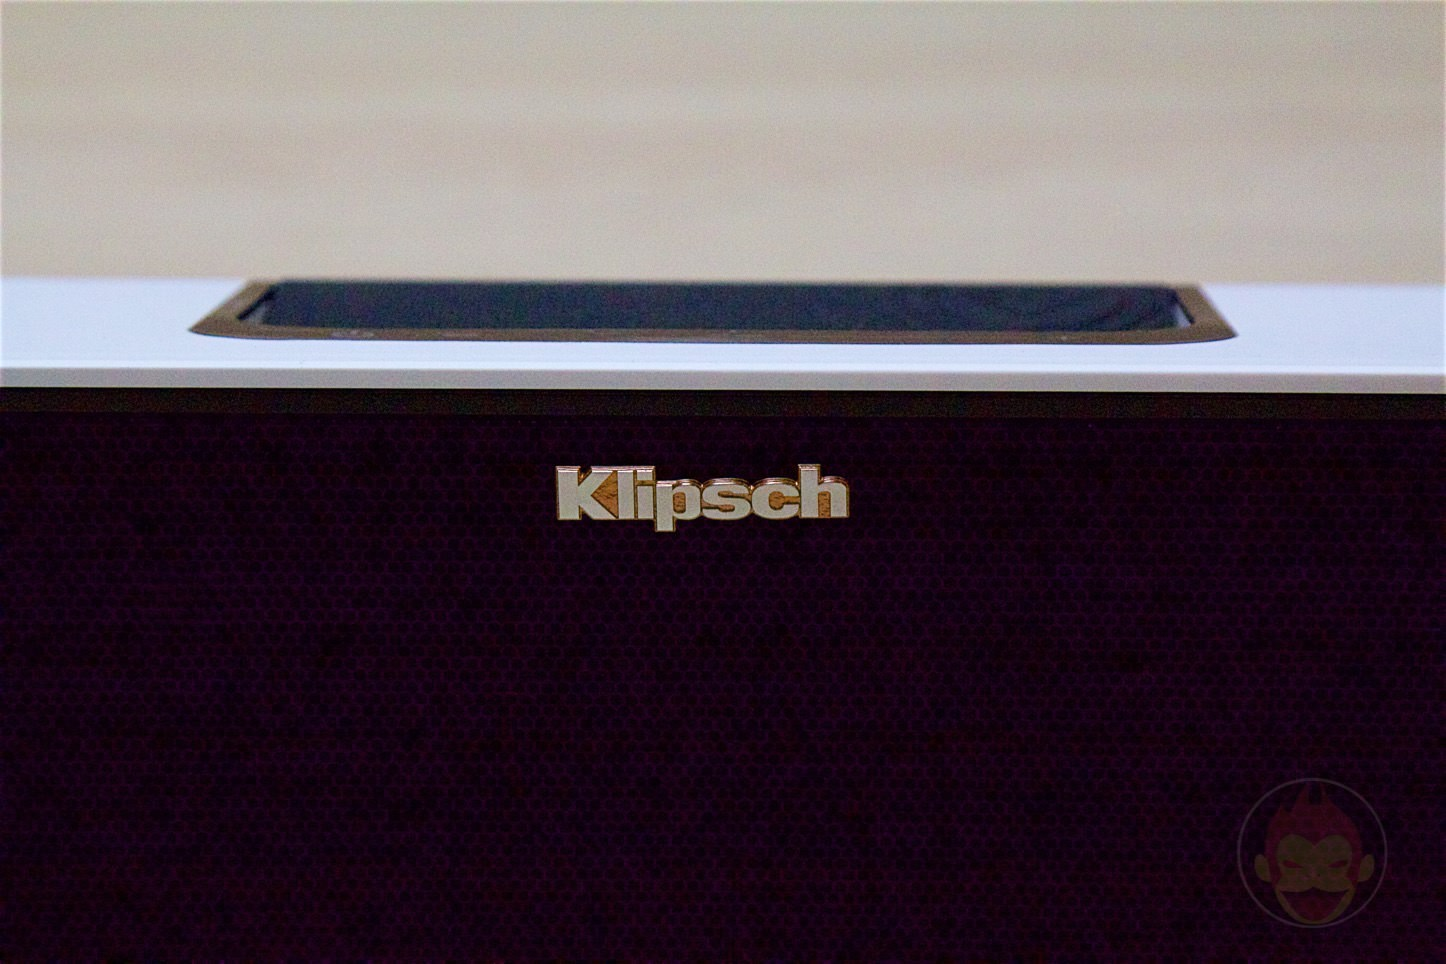 Klipsch-KMC3-Bluetooth-Speakers-01.jpg